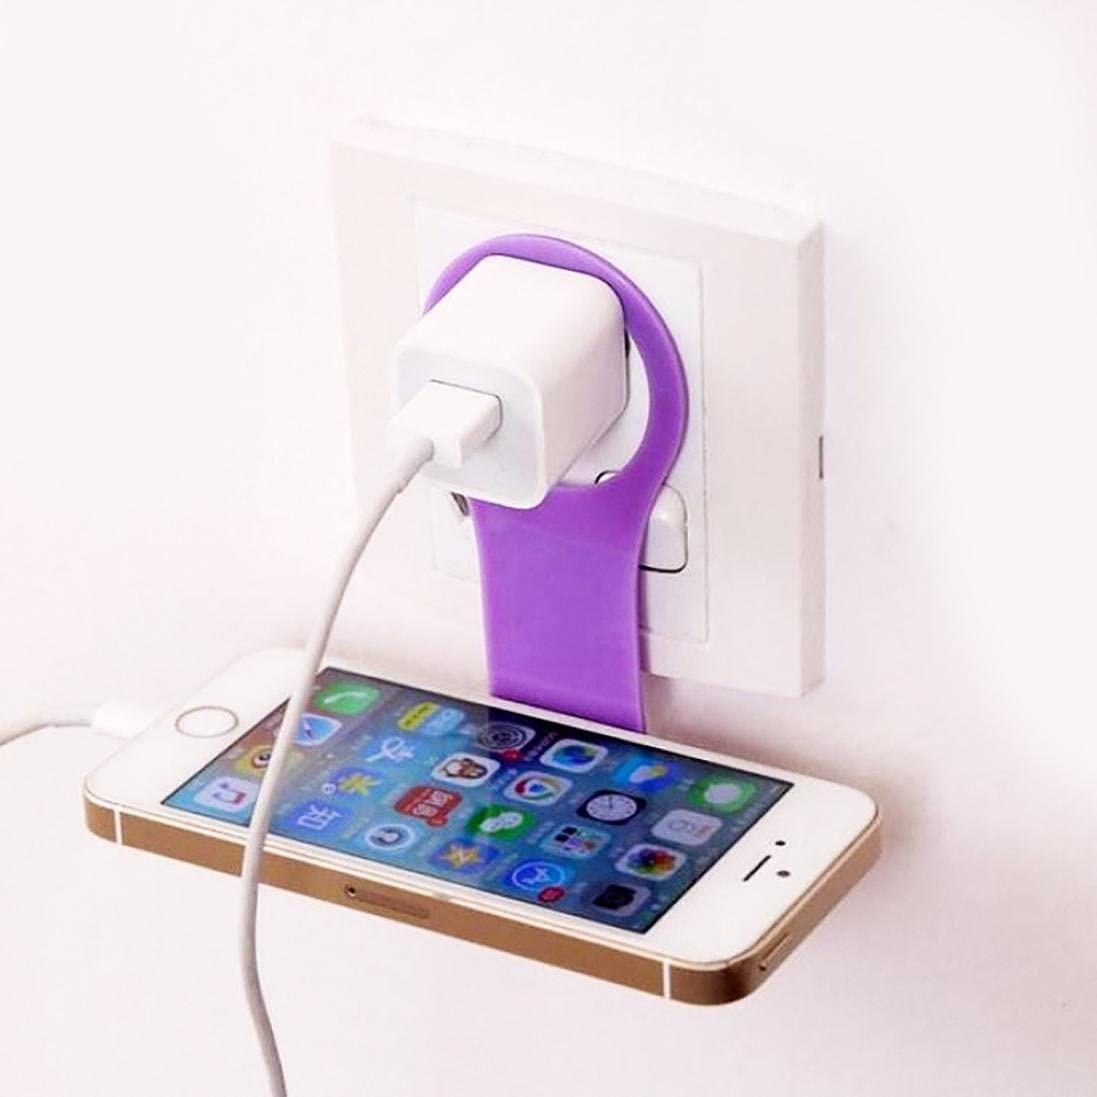 Foldable Cell Phone Wall Charger Hanger Cradle Phone Holder Universal Holder Clip Phone Hold Accessories Desk for iPhone,Samsung,Other Smartphone 2Pcs Universal Cell Phone Stand Random